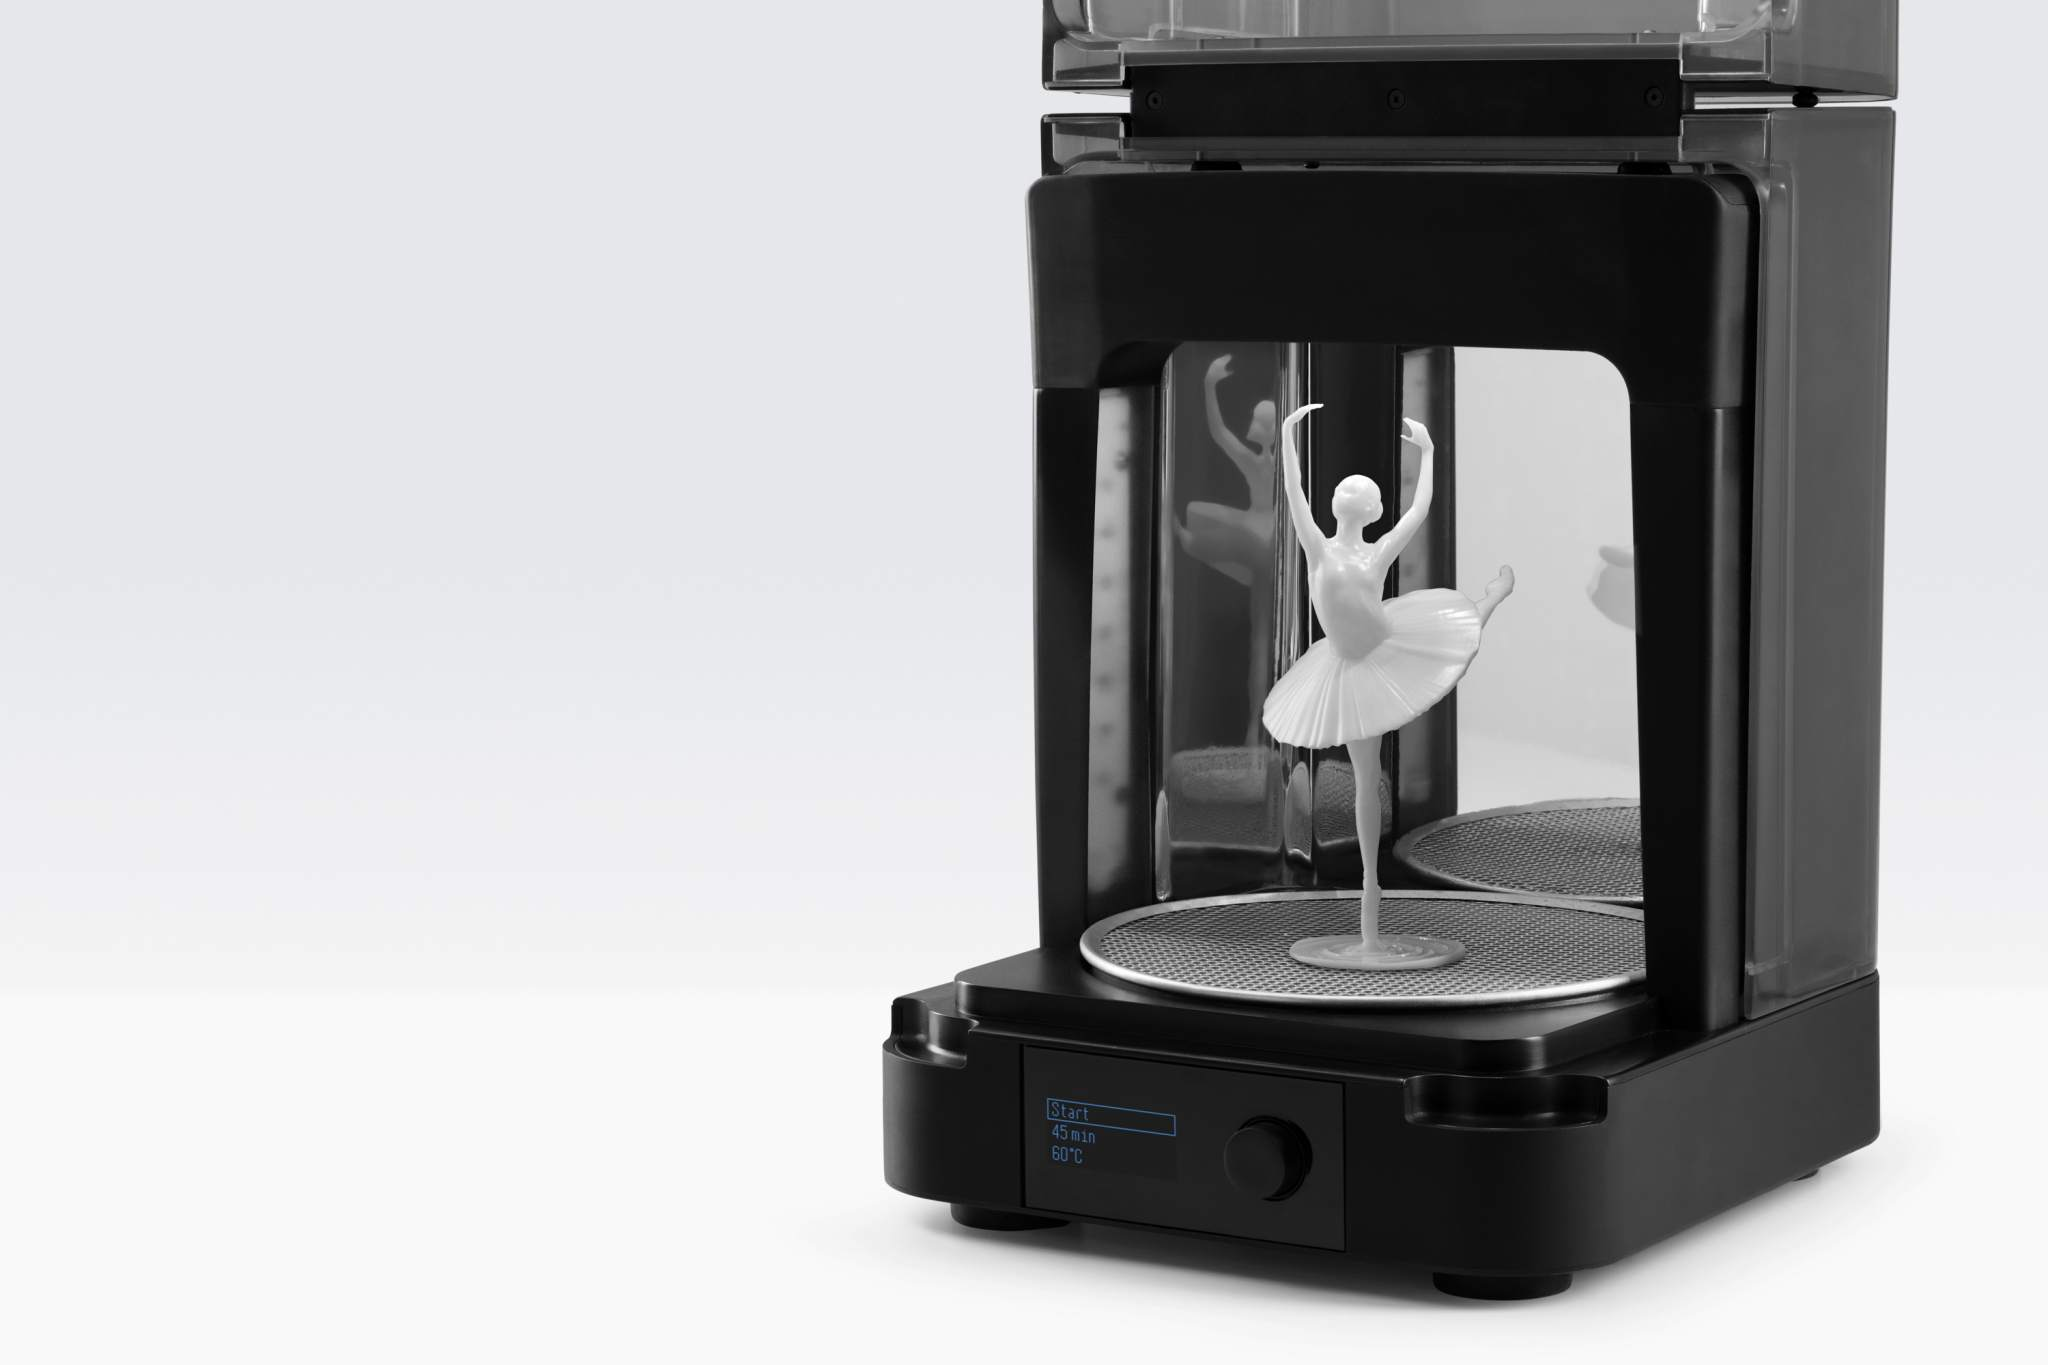 The Form Cure upon curing the 3D printed Ballerina. Image via Formlabs.